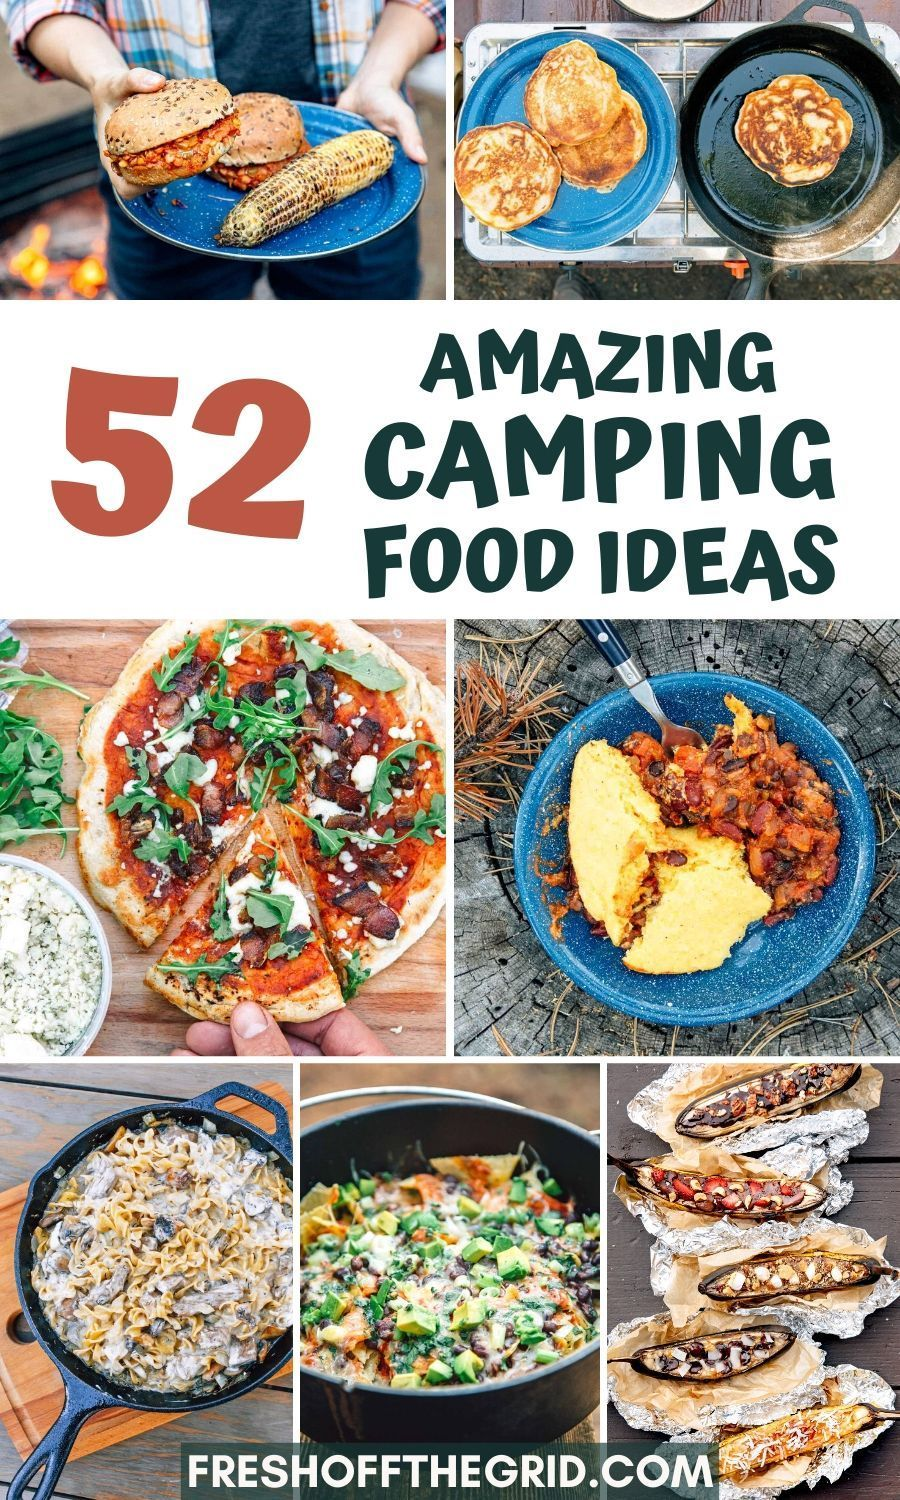 52 Incredibly Delicious Camping Food Ideas In 2020 Vegan Camping Food Camping Food Vegetarian Camping Recipes